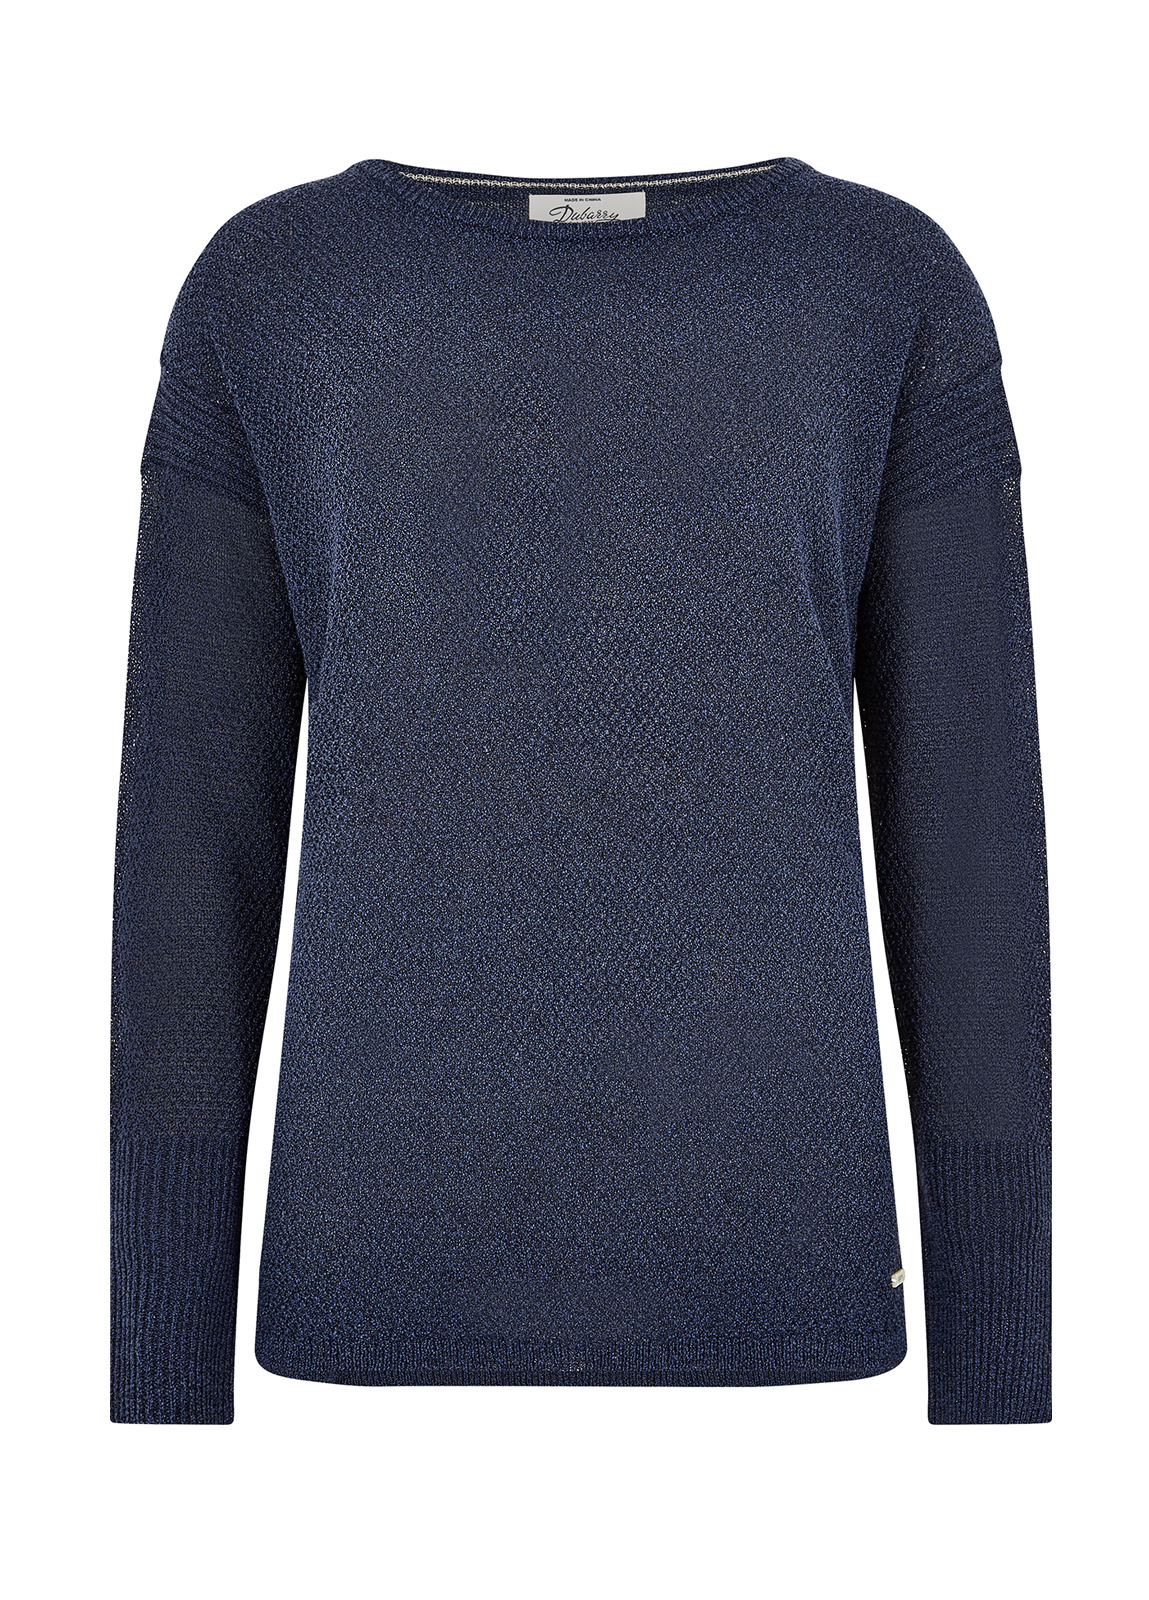 Woodford Knit Top - Navy